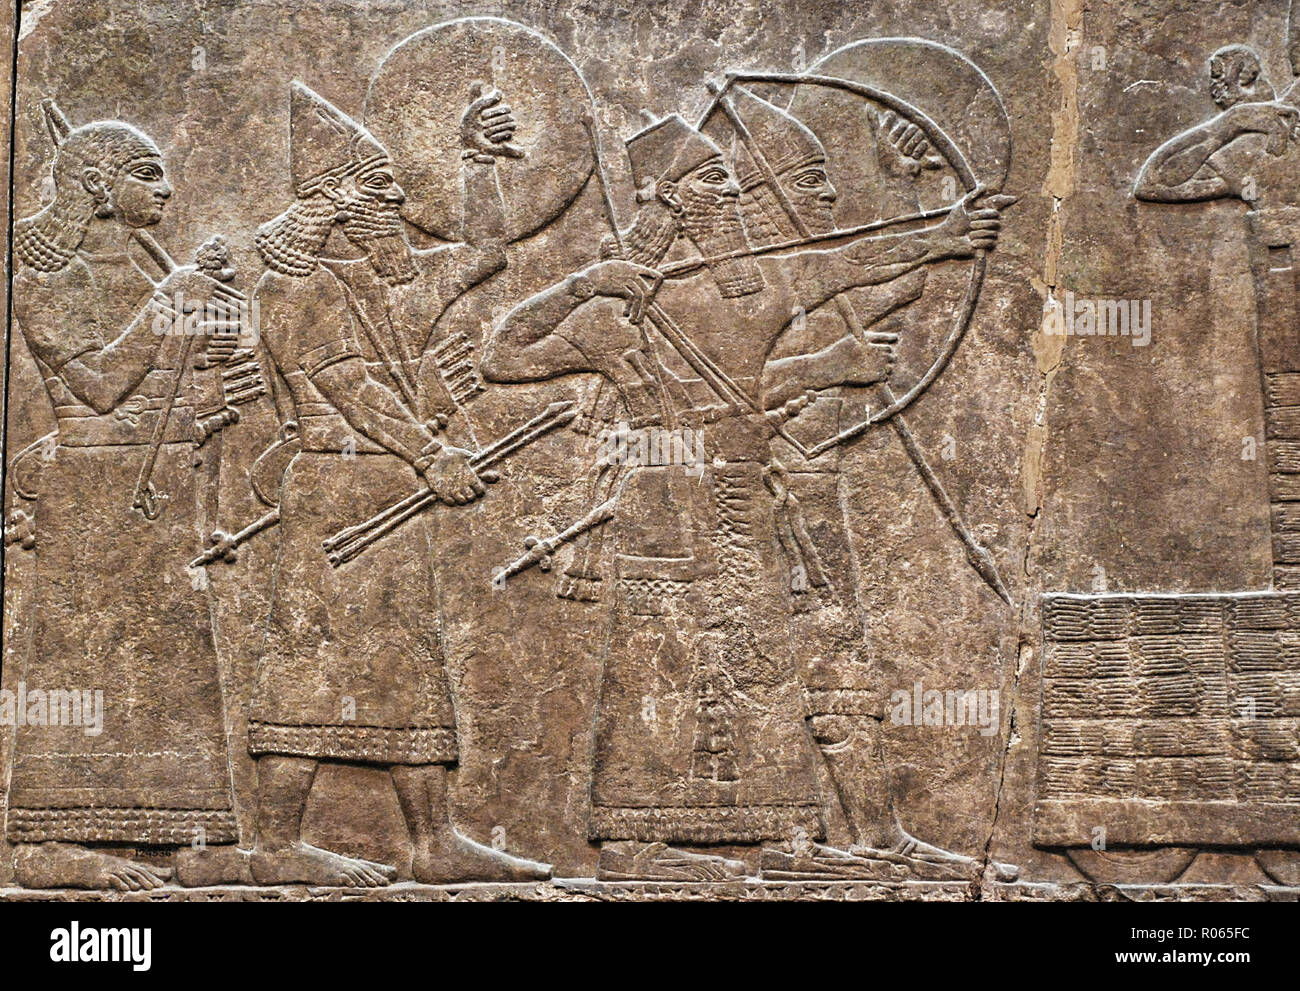 6376. Assyrian relief from King Ashurnasrirpal's pakace in Kalhu showing a battle scene, the King on the left is protected by a shield bearer, c. 860 BC. Stock Photo